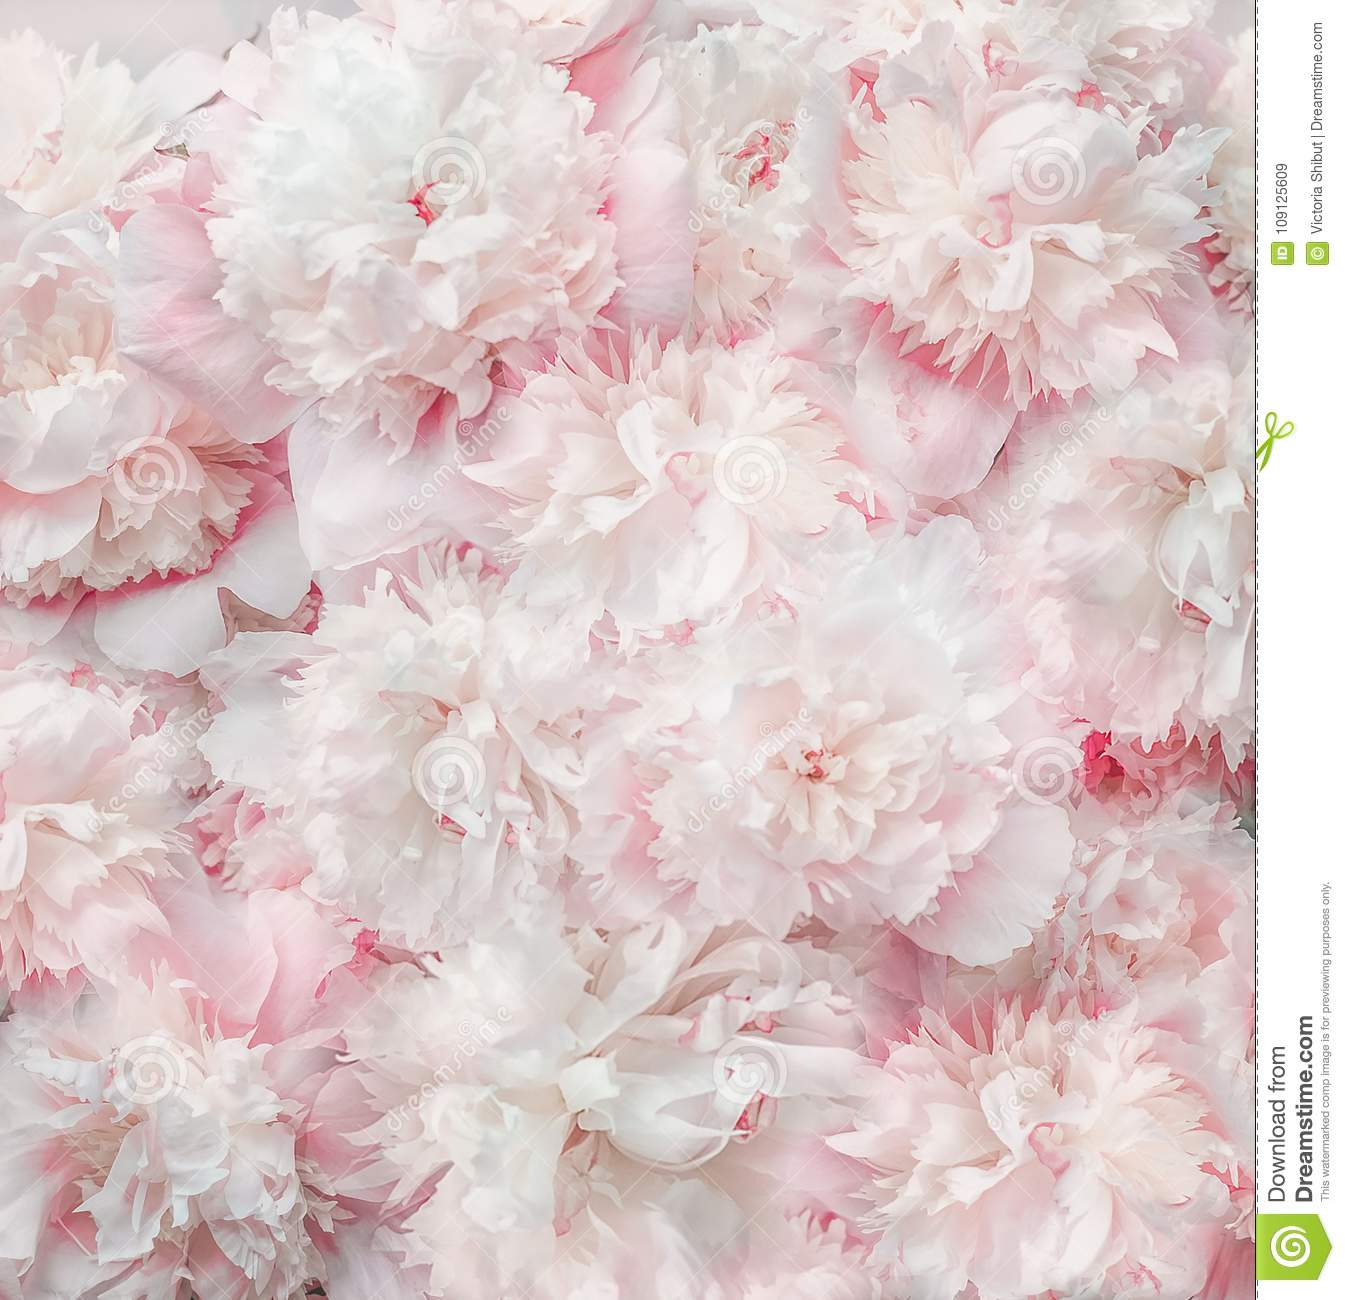 Pastel pink white flowers and petals background soft tone peonies pastel pink white flowers and petals background soft tone peonies bloom top view mightylinksfo